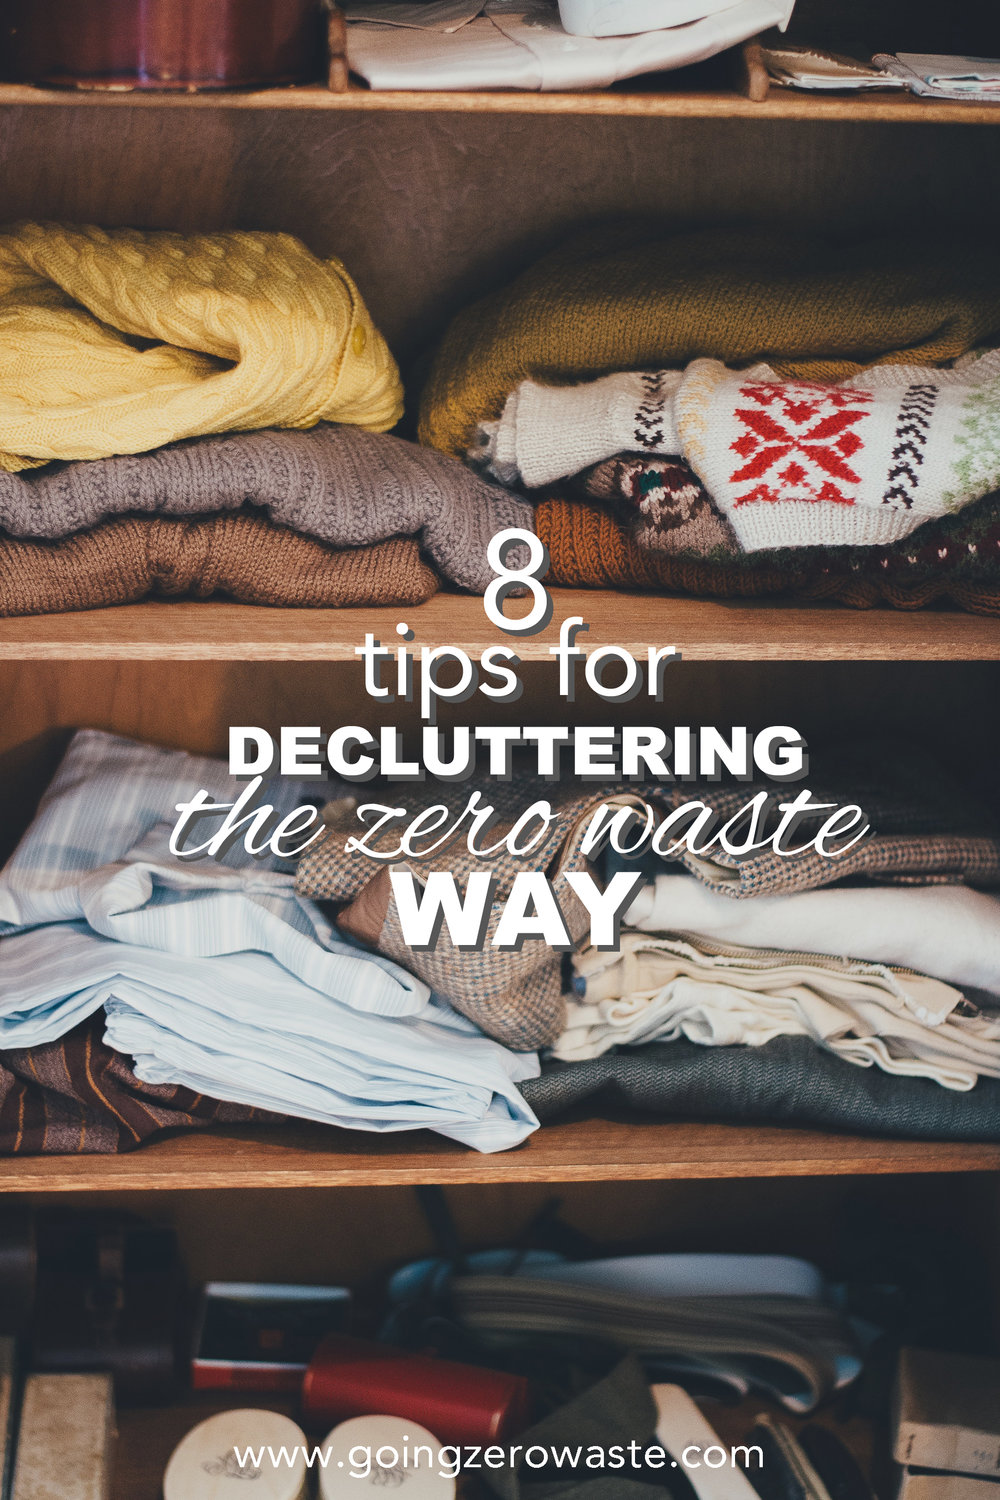 8 tips for decluttering the zero waste way from www.goingzerowaste.com #zerowaste